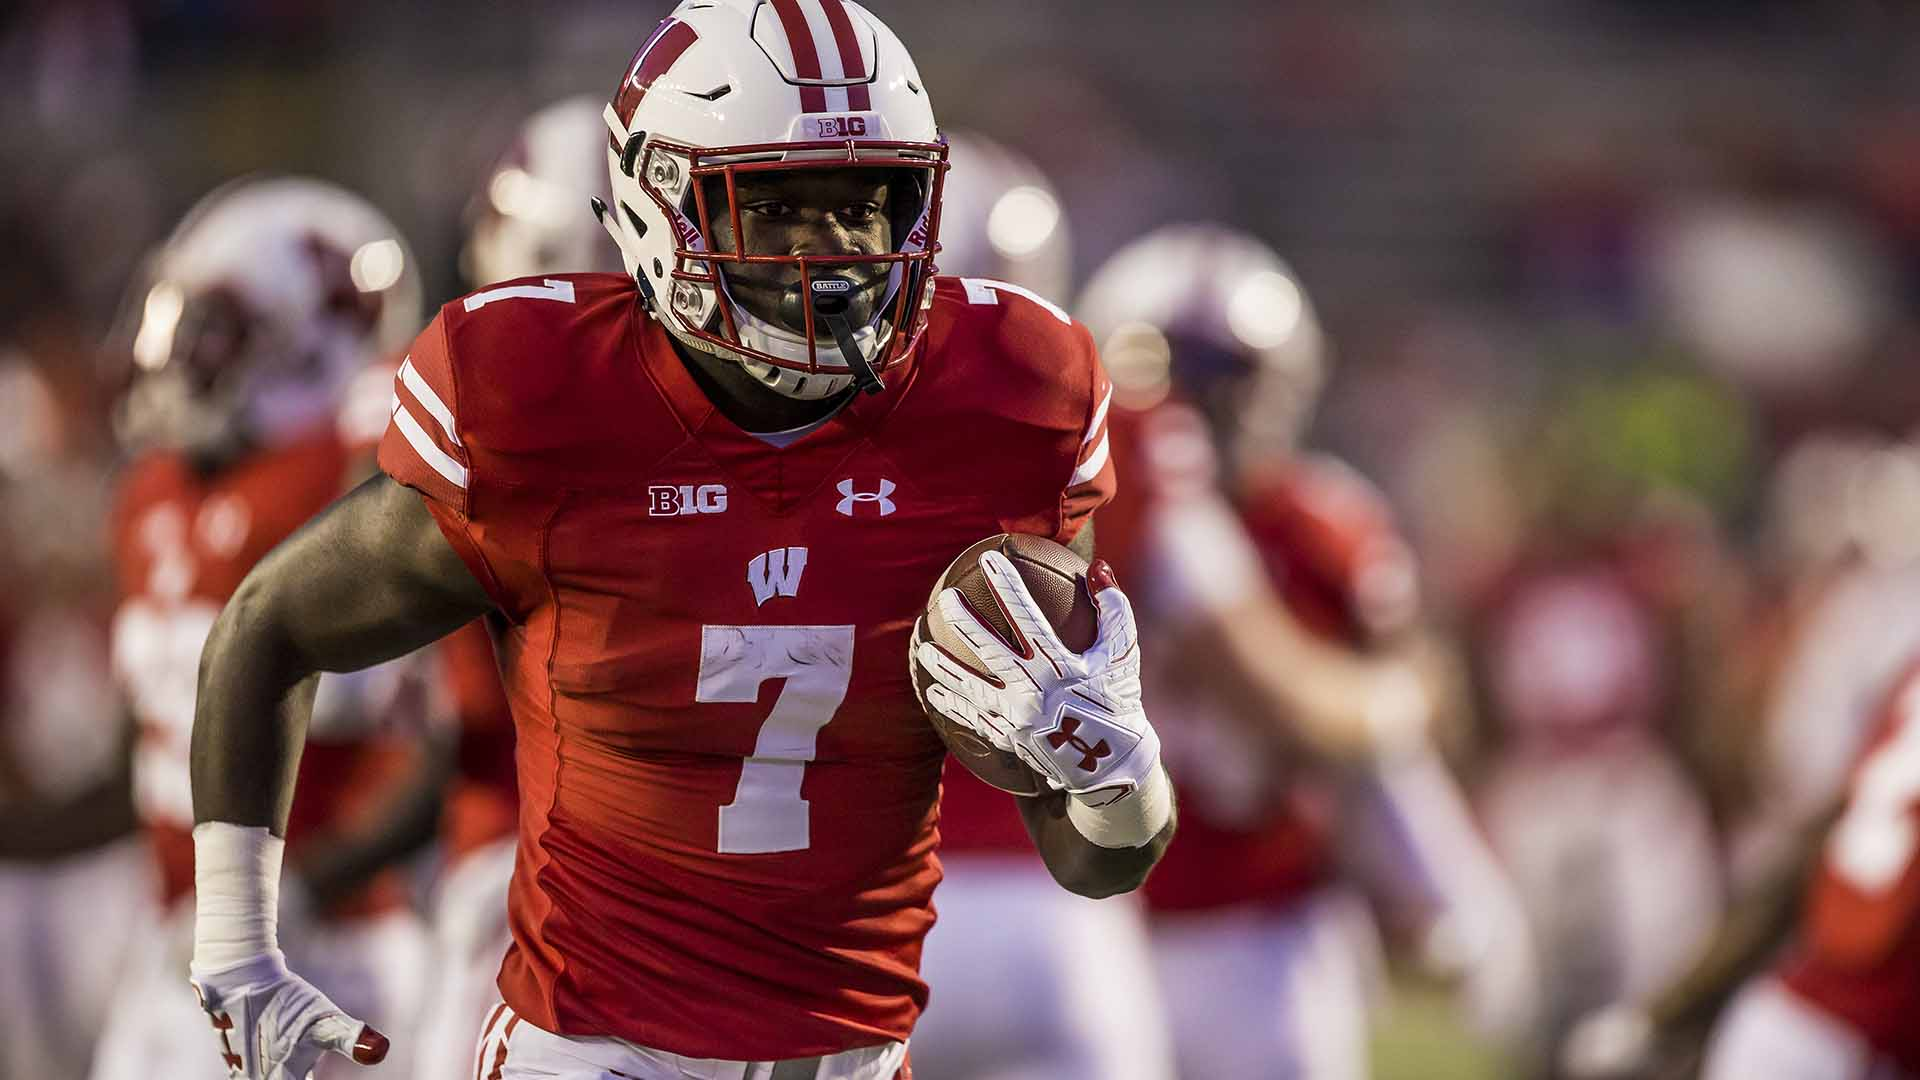 Wisconsin Athletics | Official Athletics Website